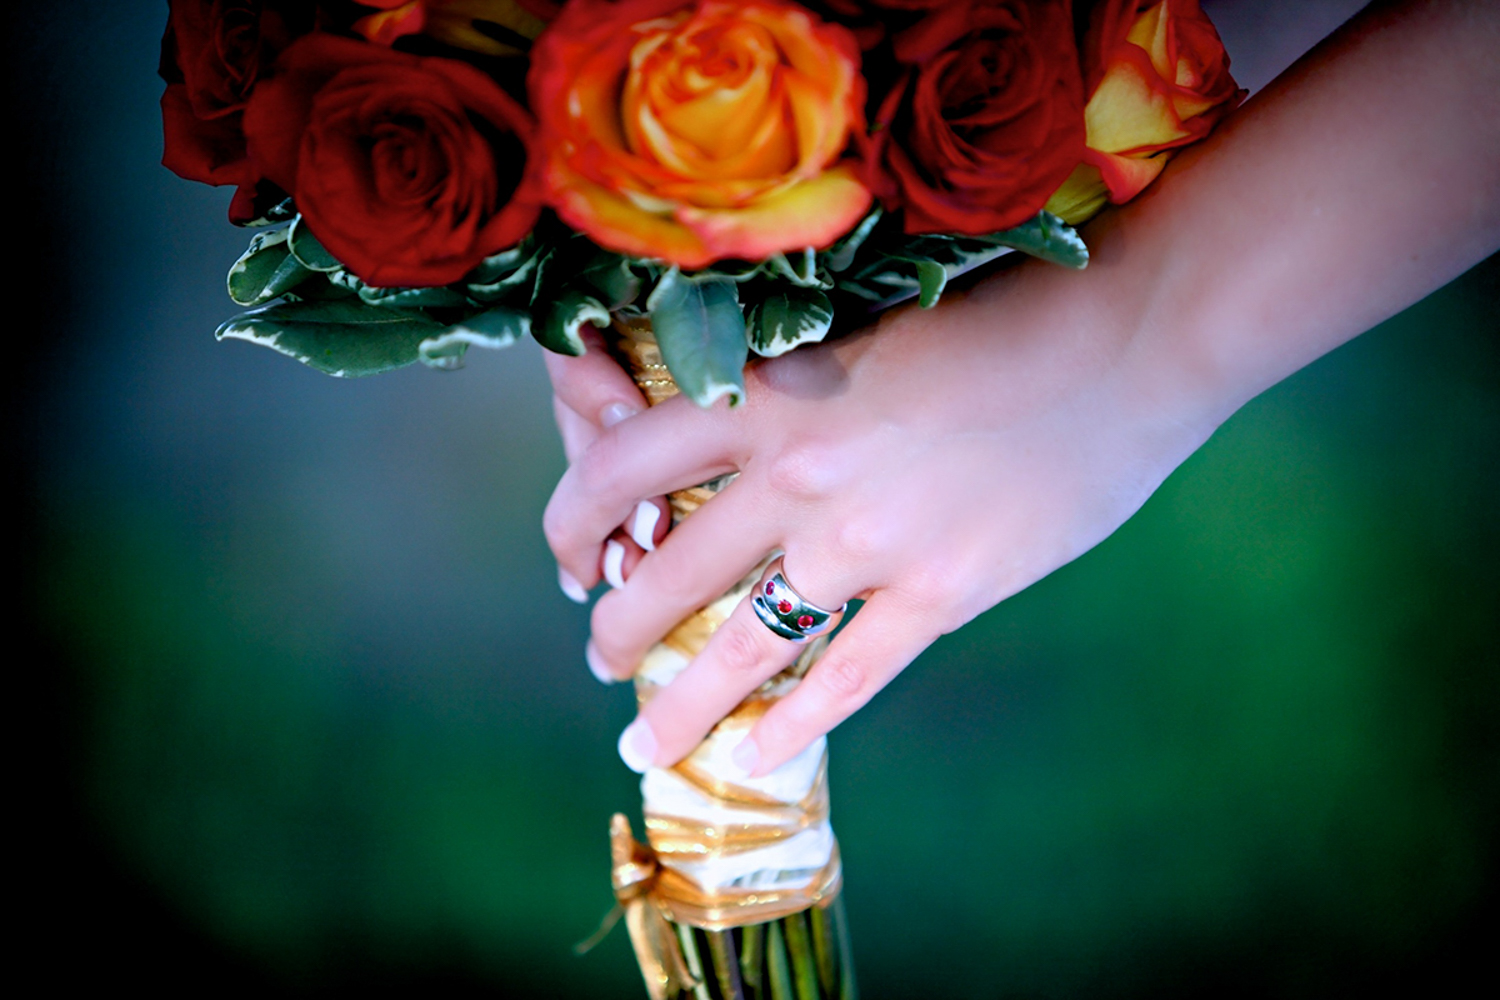 val-westover-photography-wedding-bouquet